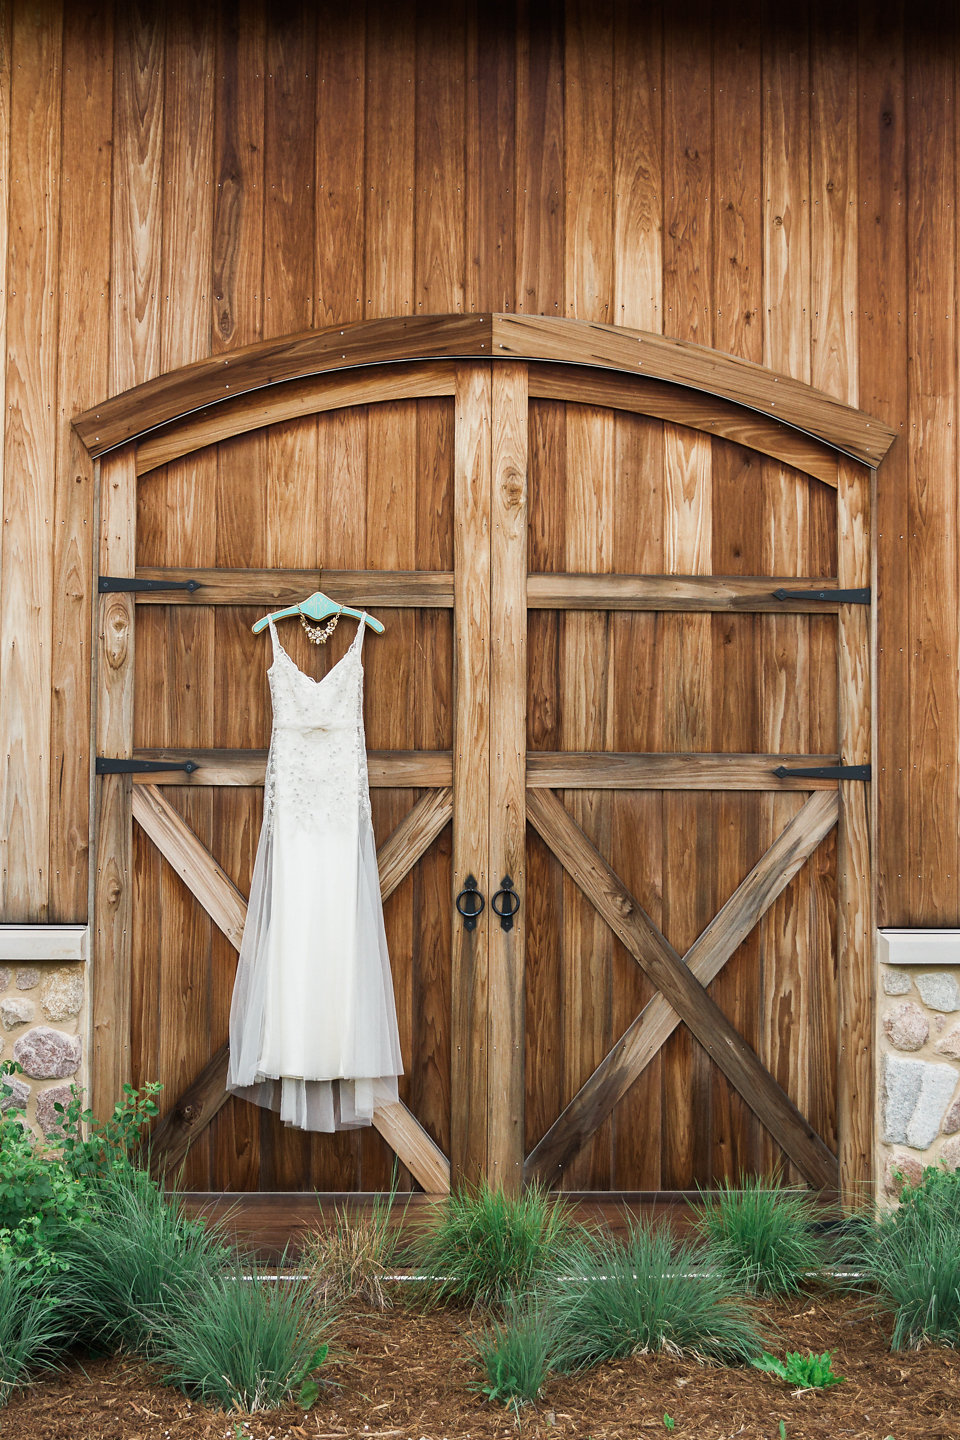 White Wedding Dress Hanging on Barn Doors